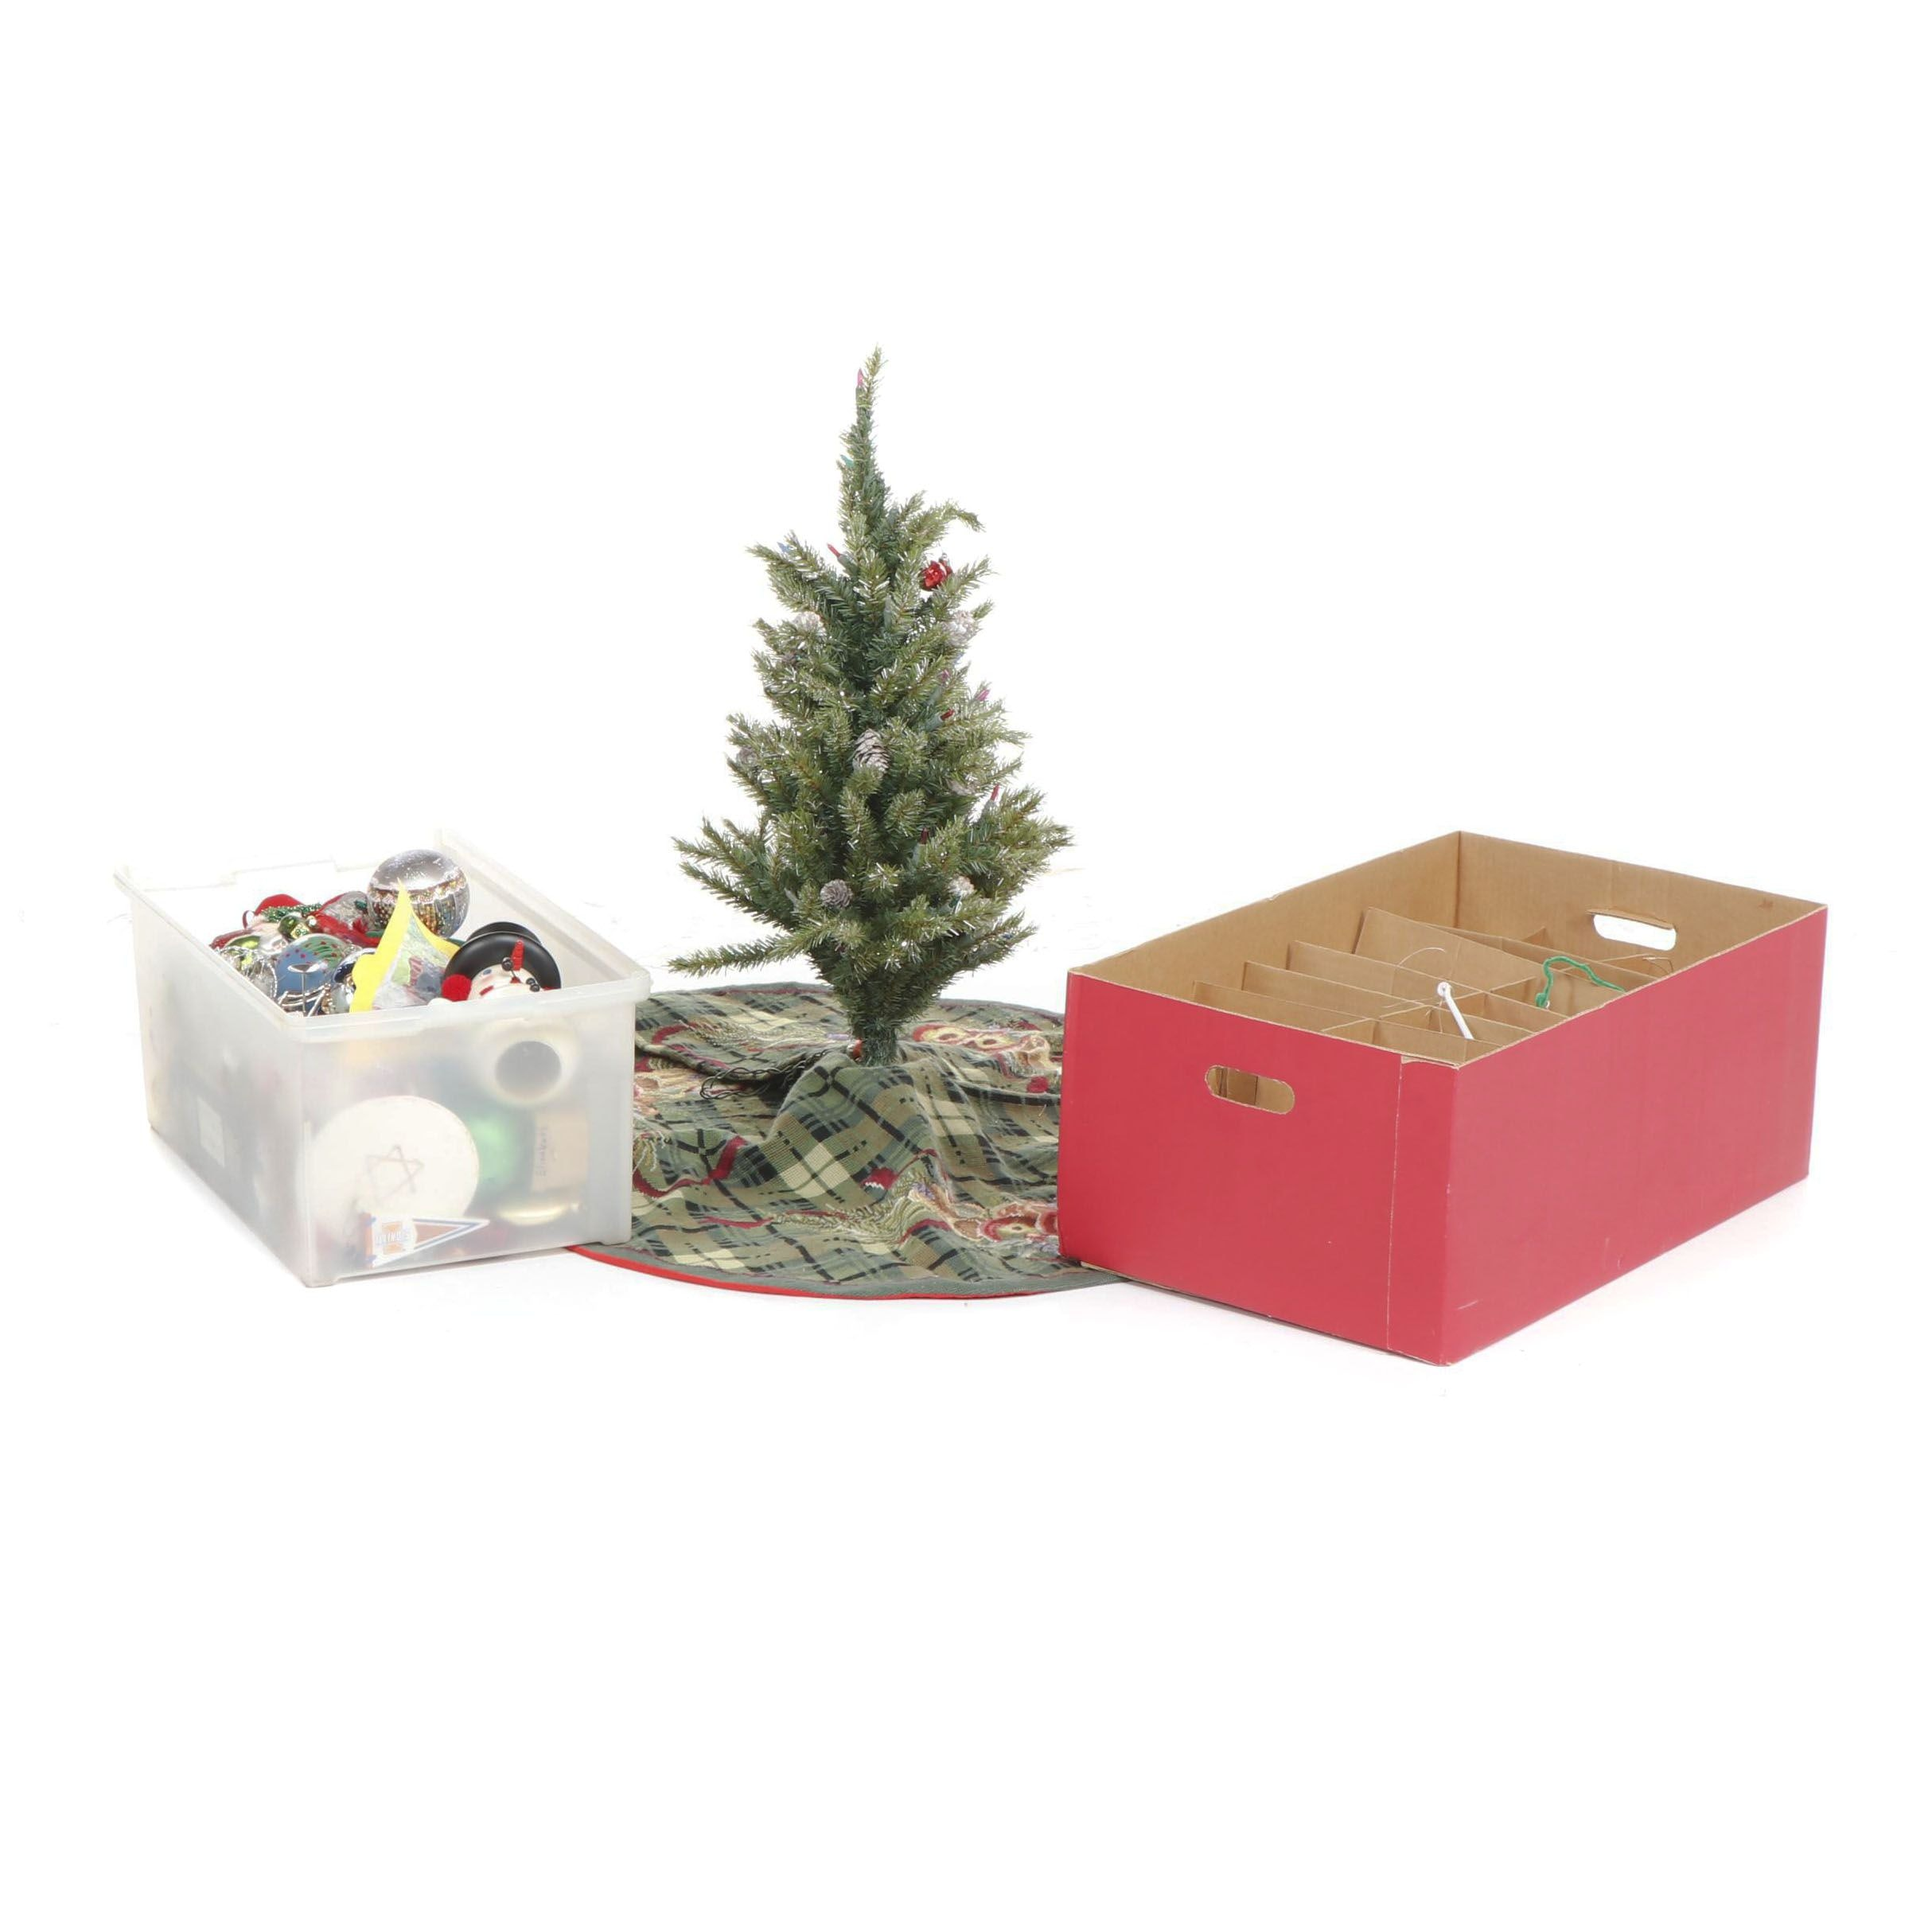 Collection of Christmas Decor Including Ornaments, Miniature Tree, and More